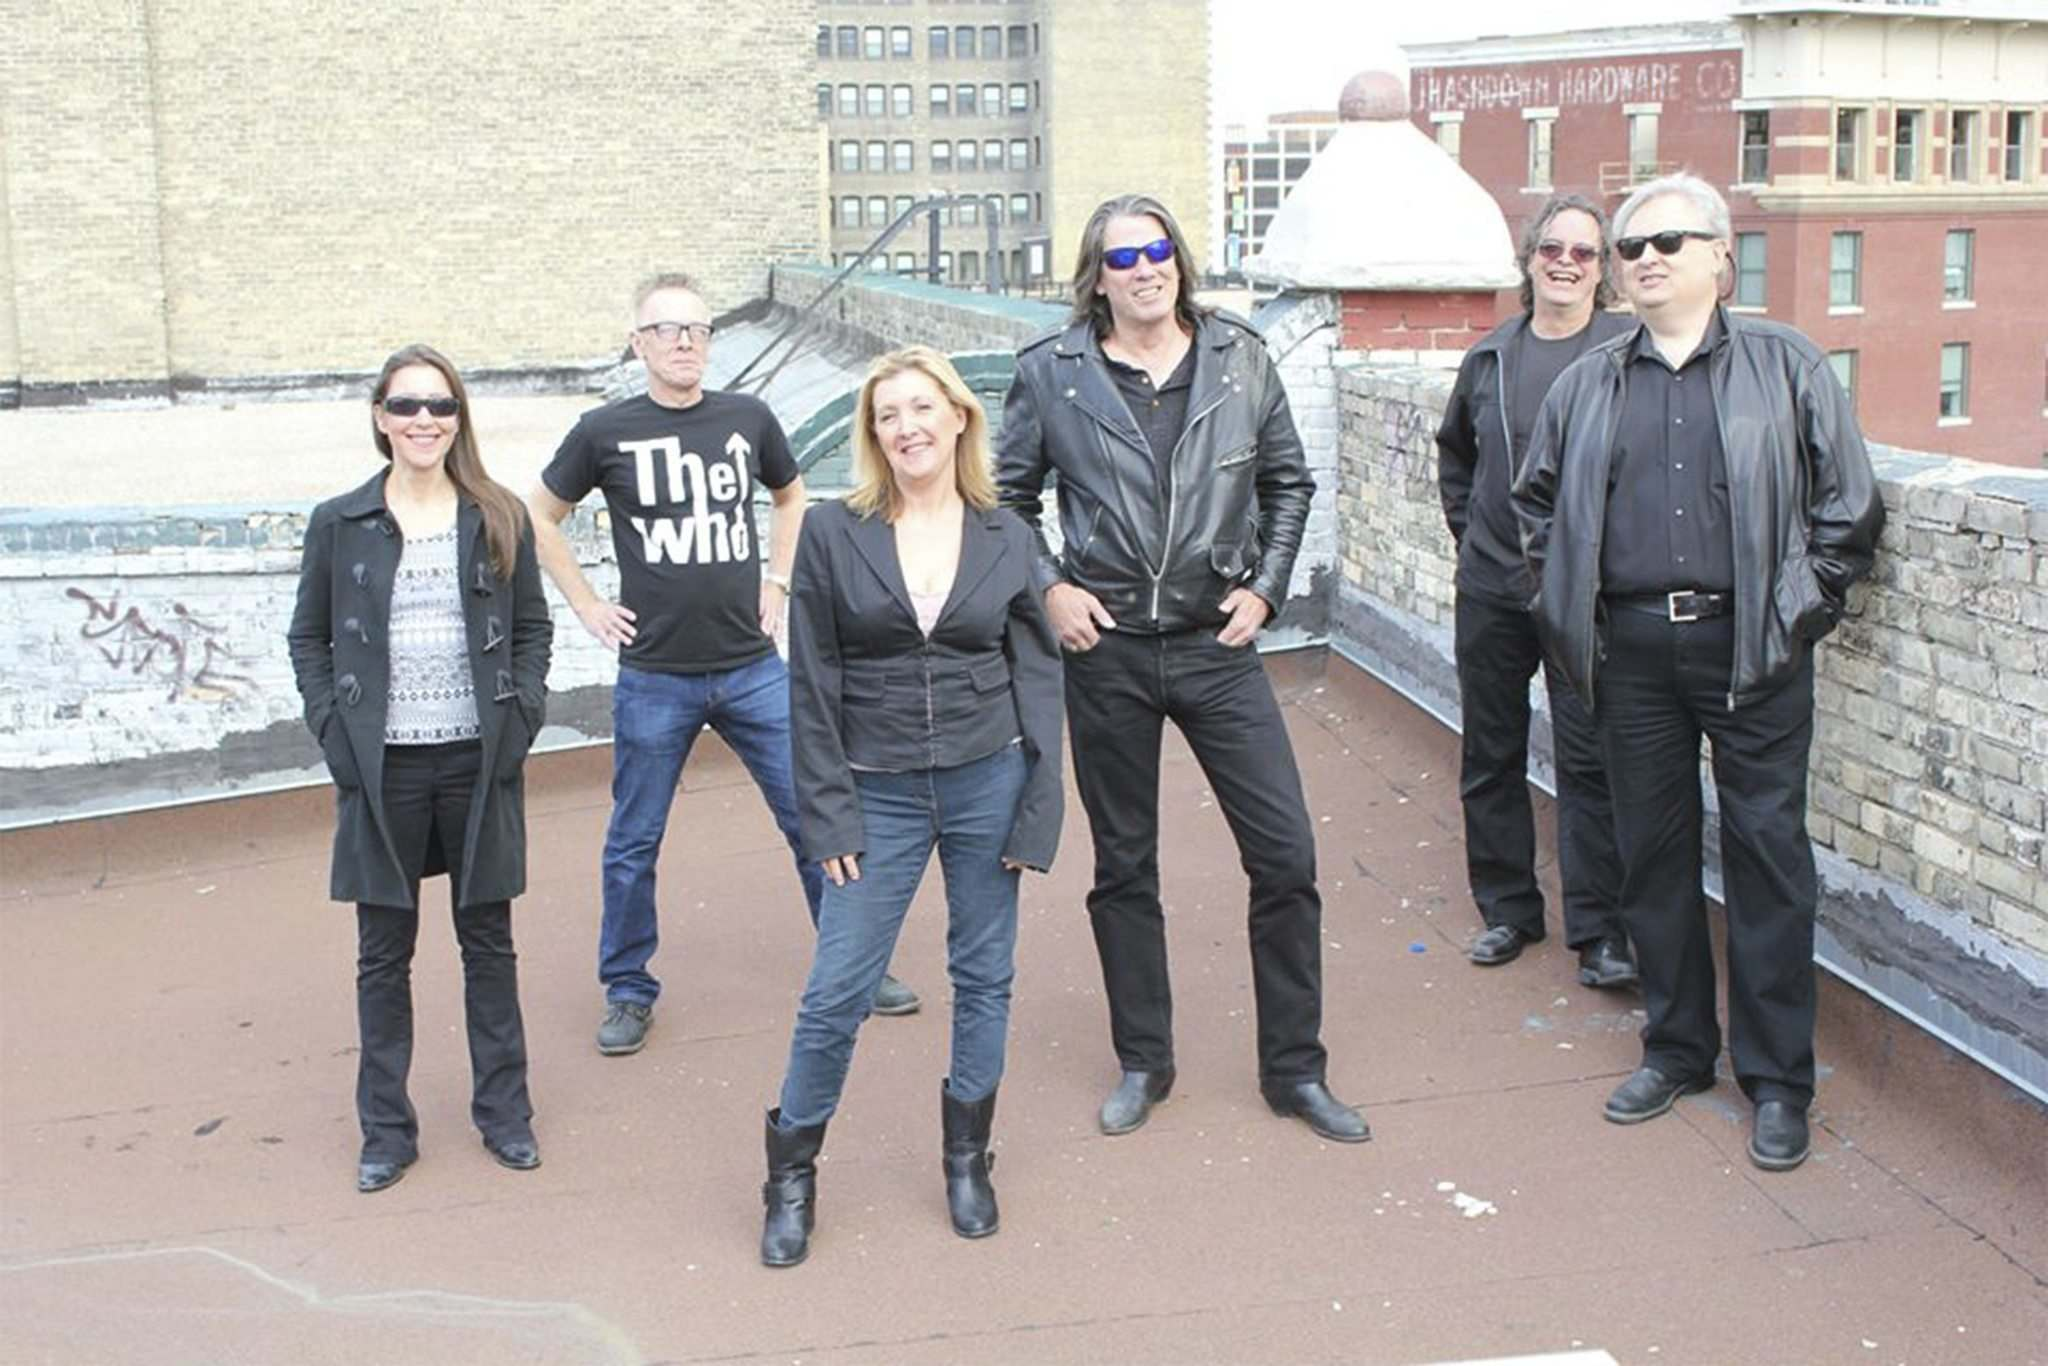 From left, keyboardist/vocalist Mary Anne Ocho, guitarist Ricky Carpick, singer Tasha Amabile, drummer Richard Trann, singer/guitarist Chris Brett and bassist John Neal.</p></p>